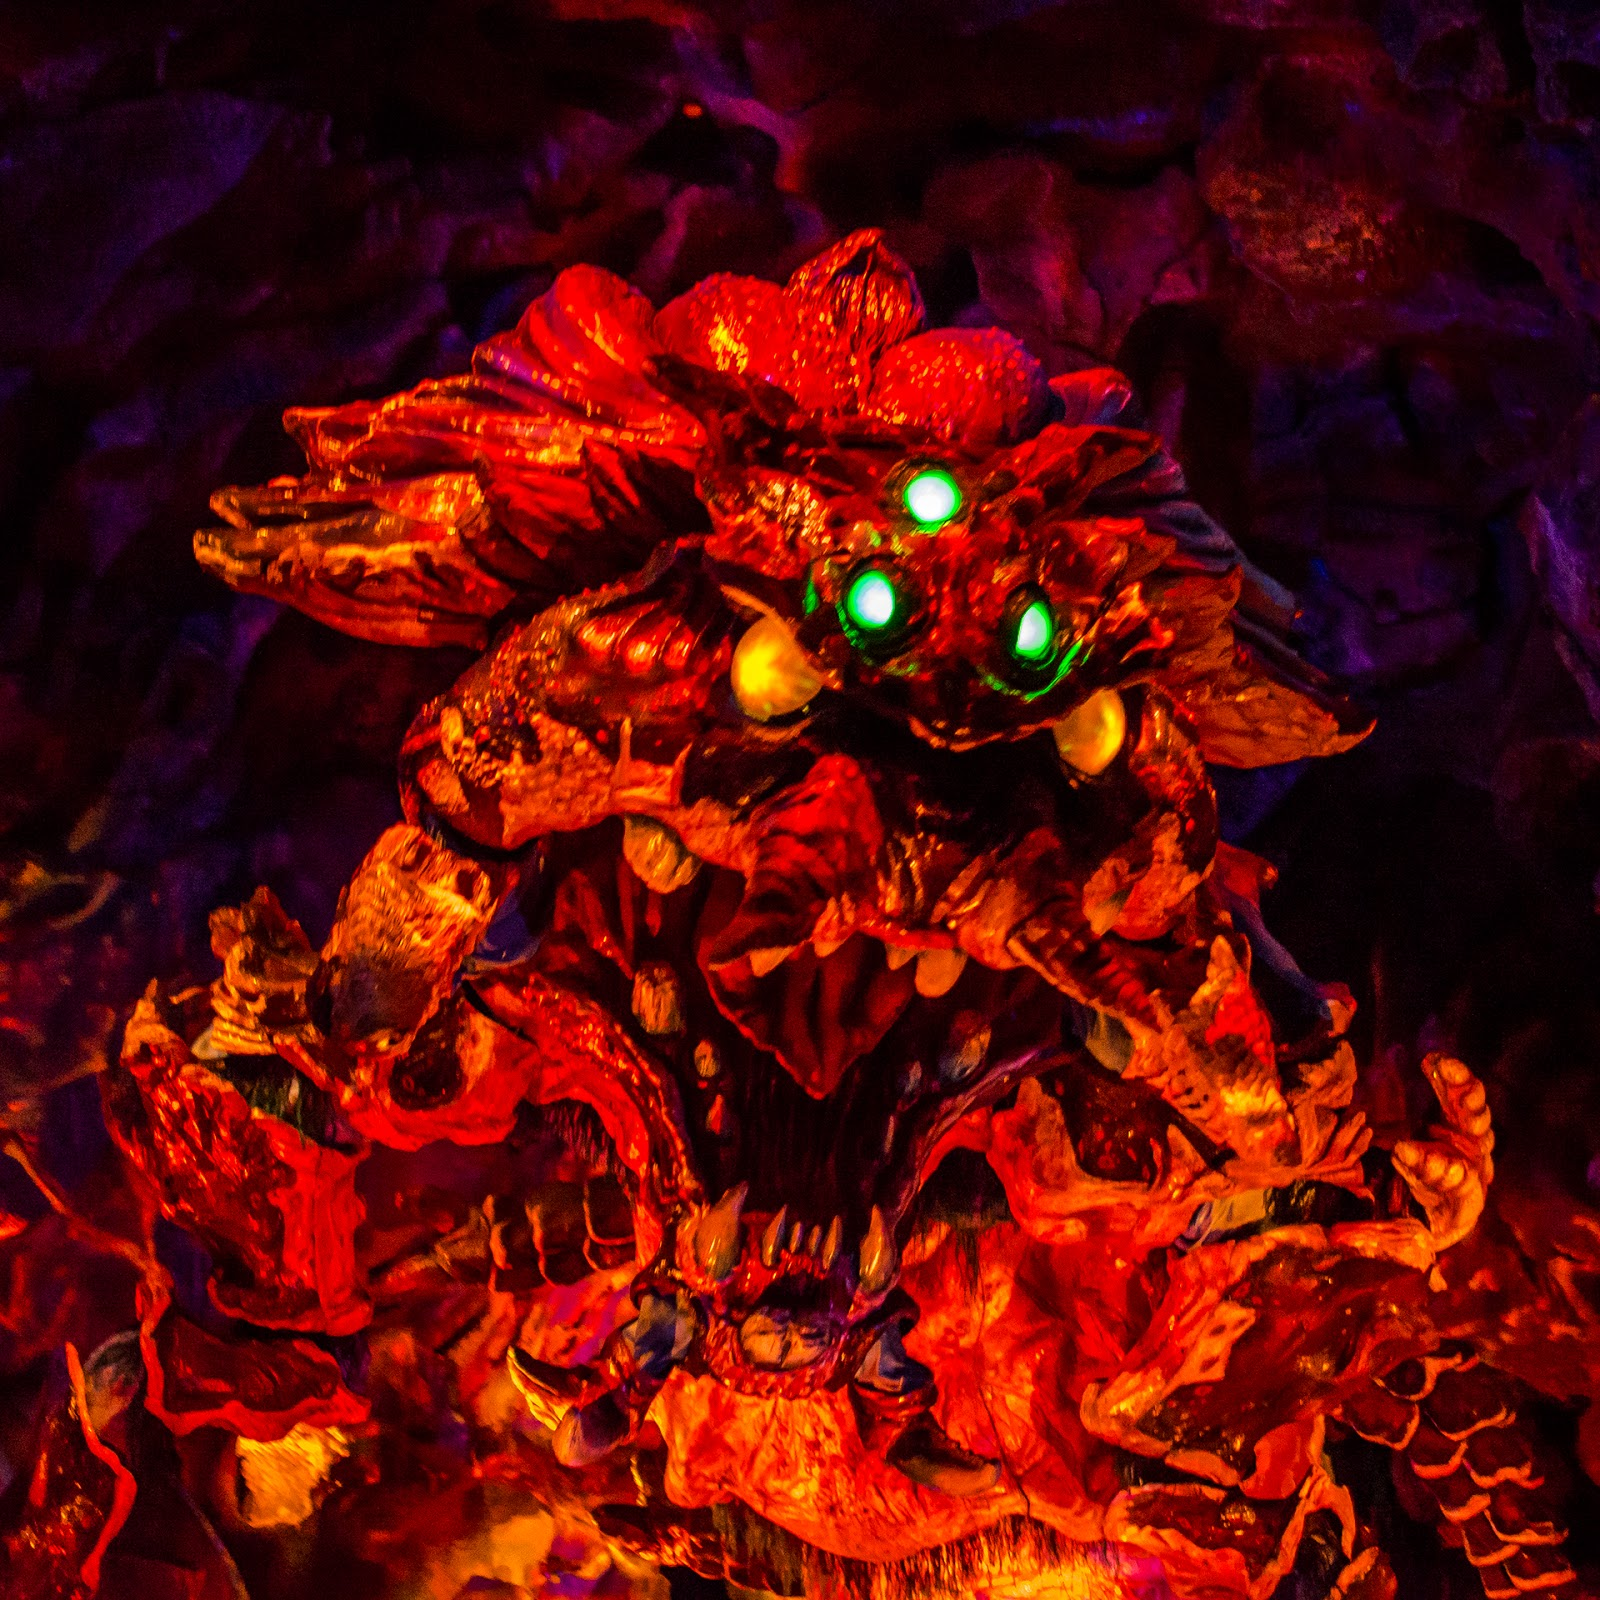 Lava Monster (Journey to the Center of the Earth)